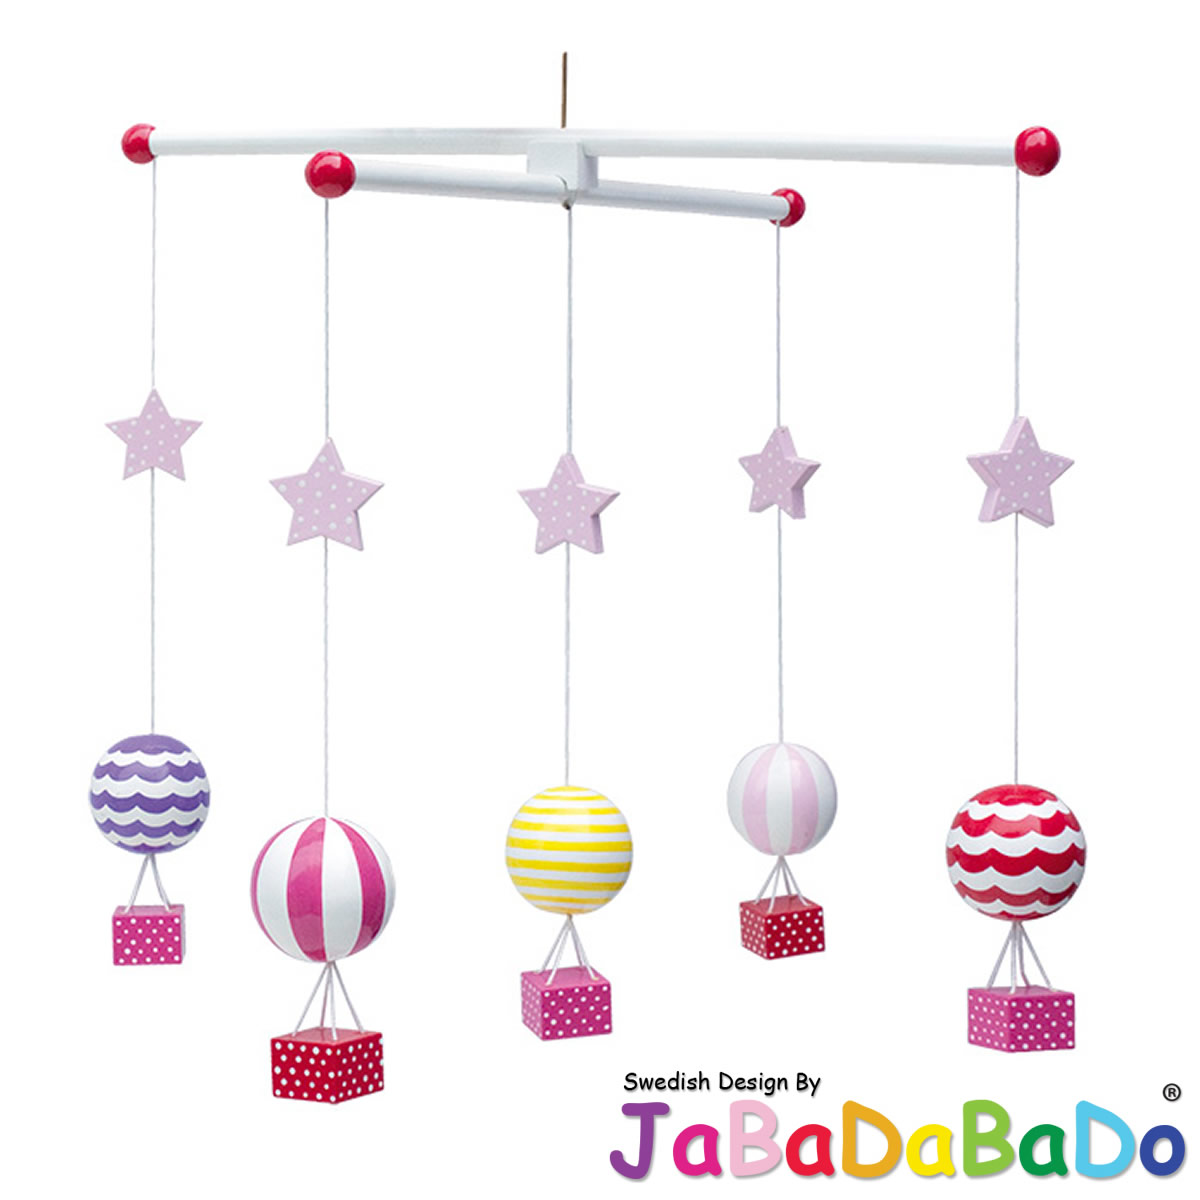 jabadabado 3d babyzimmer mobile holz flugzeug hei luftballon schmetterling blume ebay. Black Bedroom Furniture Sets. Home Design Ideas